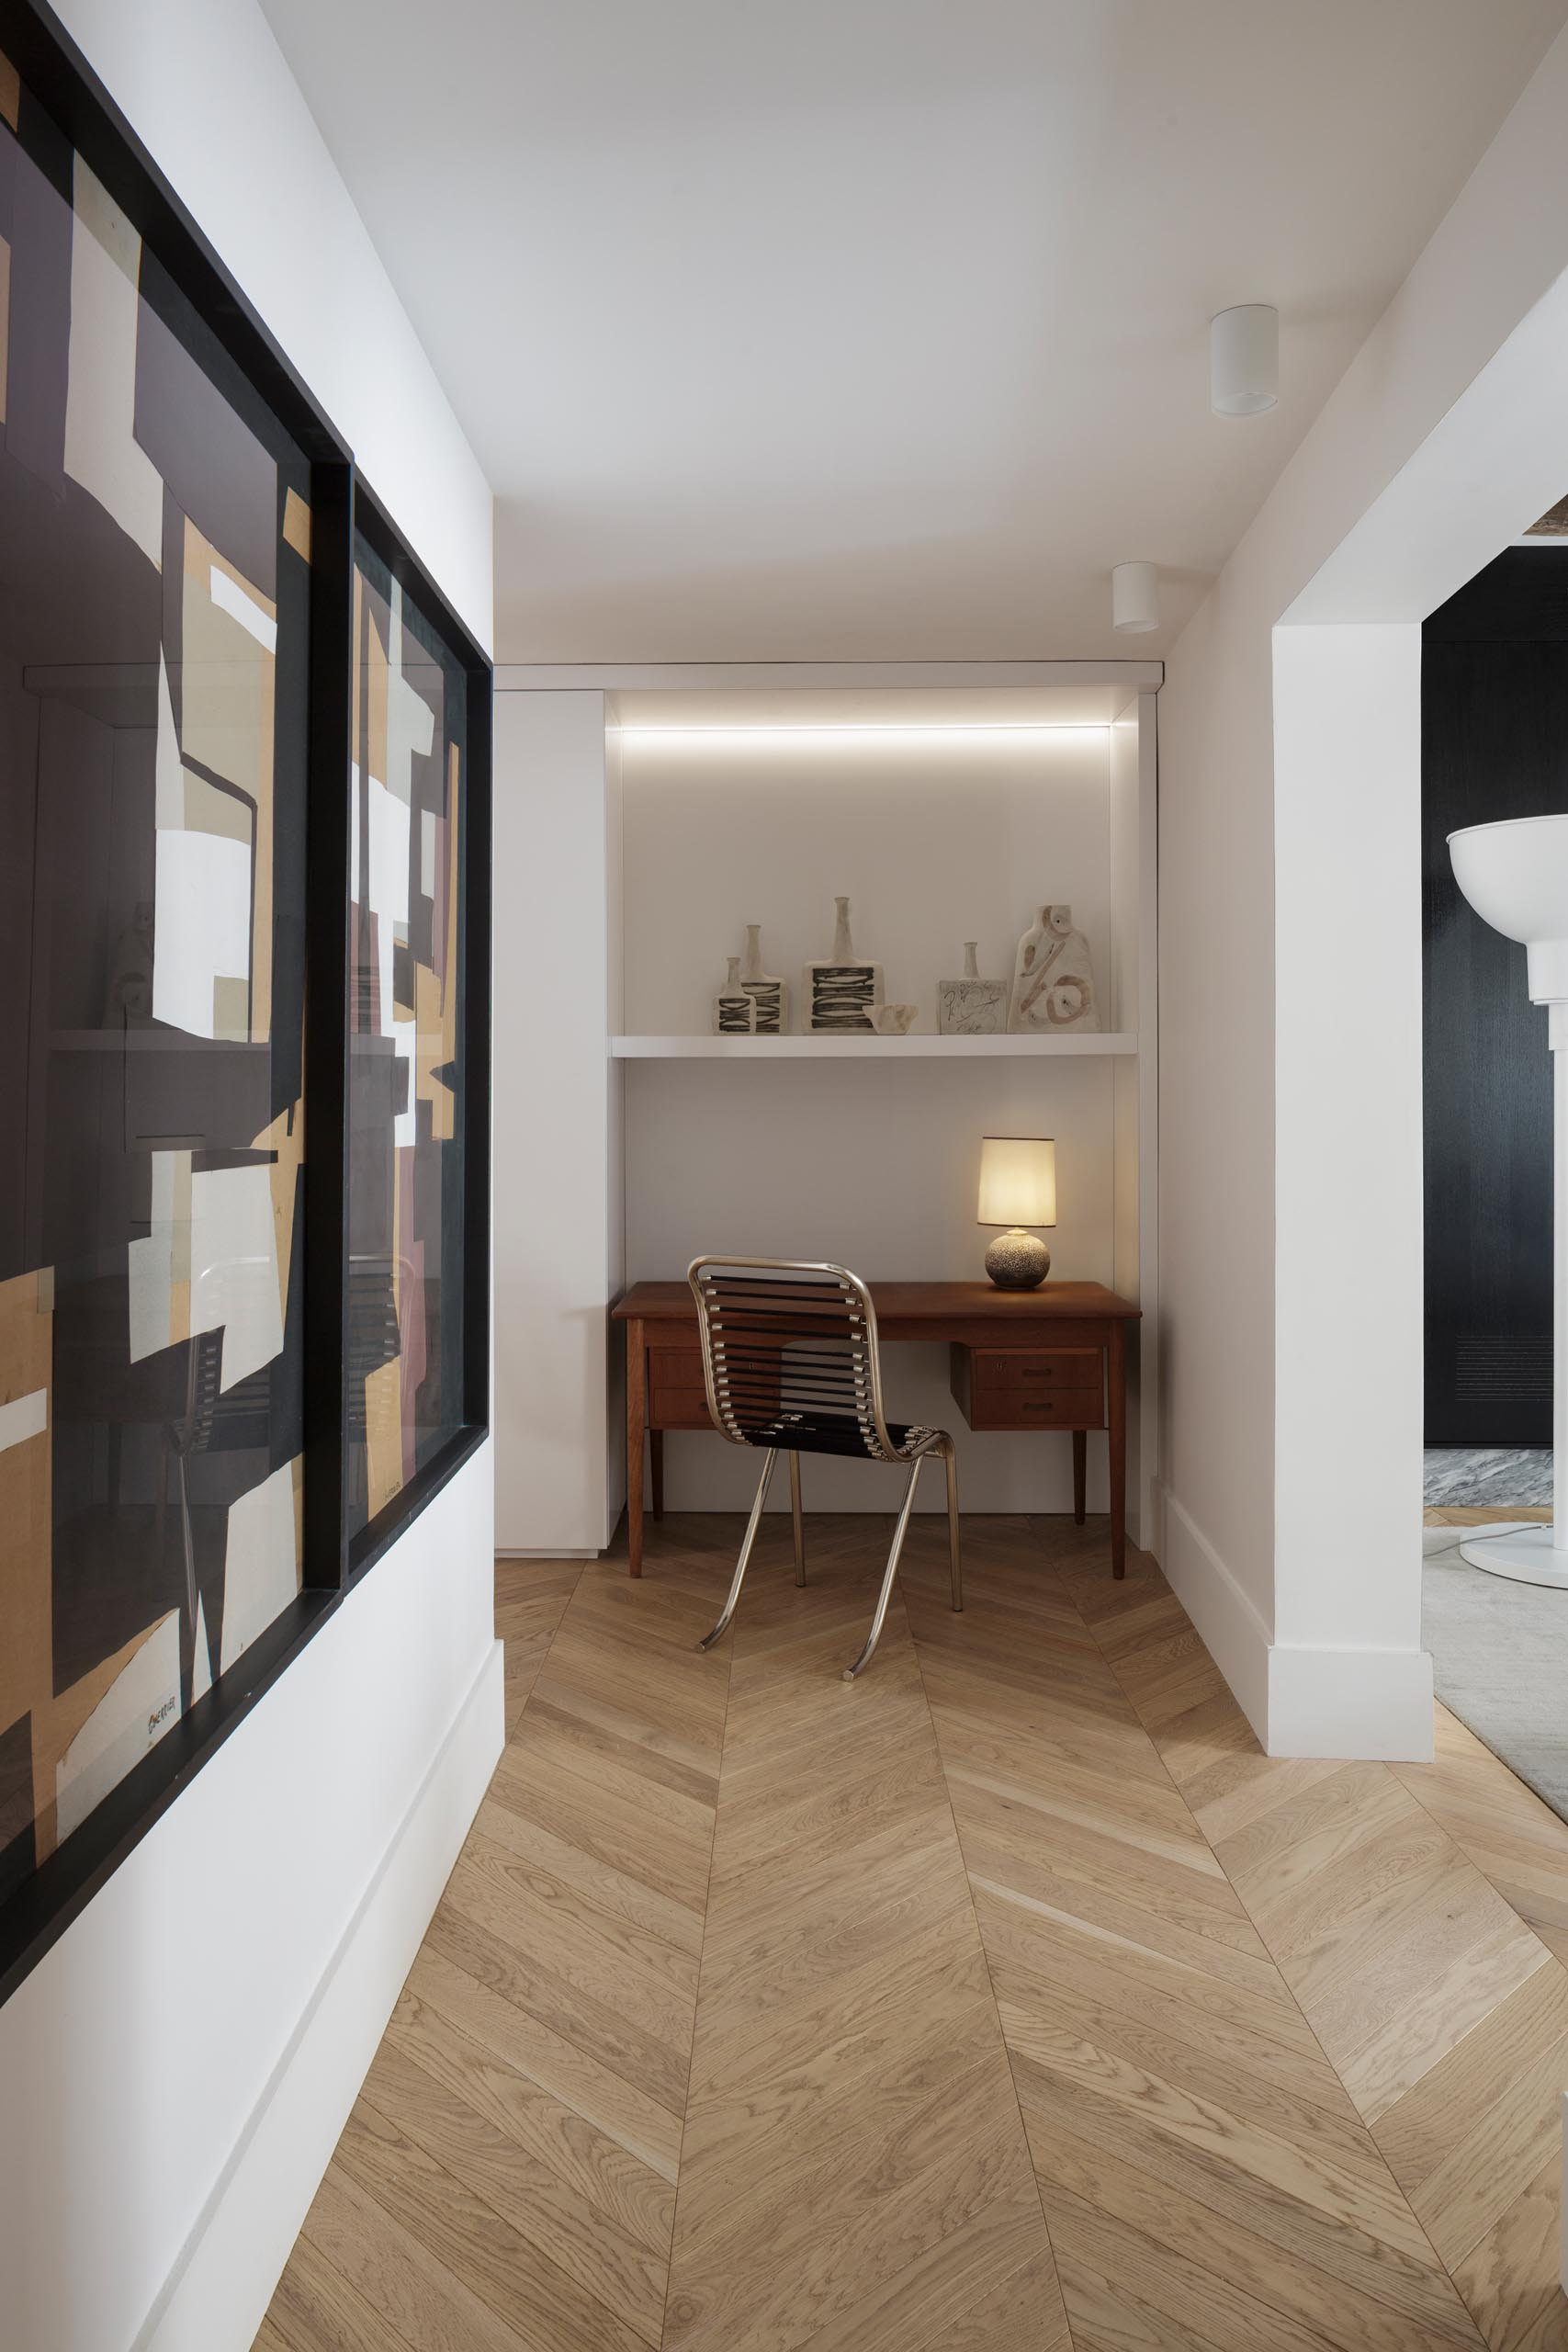 A small home office is located at the end of a hallway, and includes a small wood desk as well as a built-in shelf and hidden lighting.